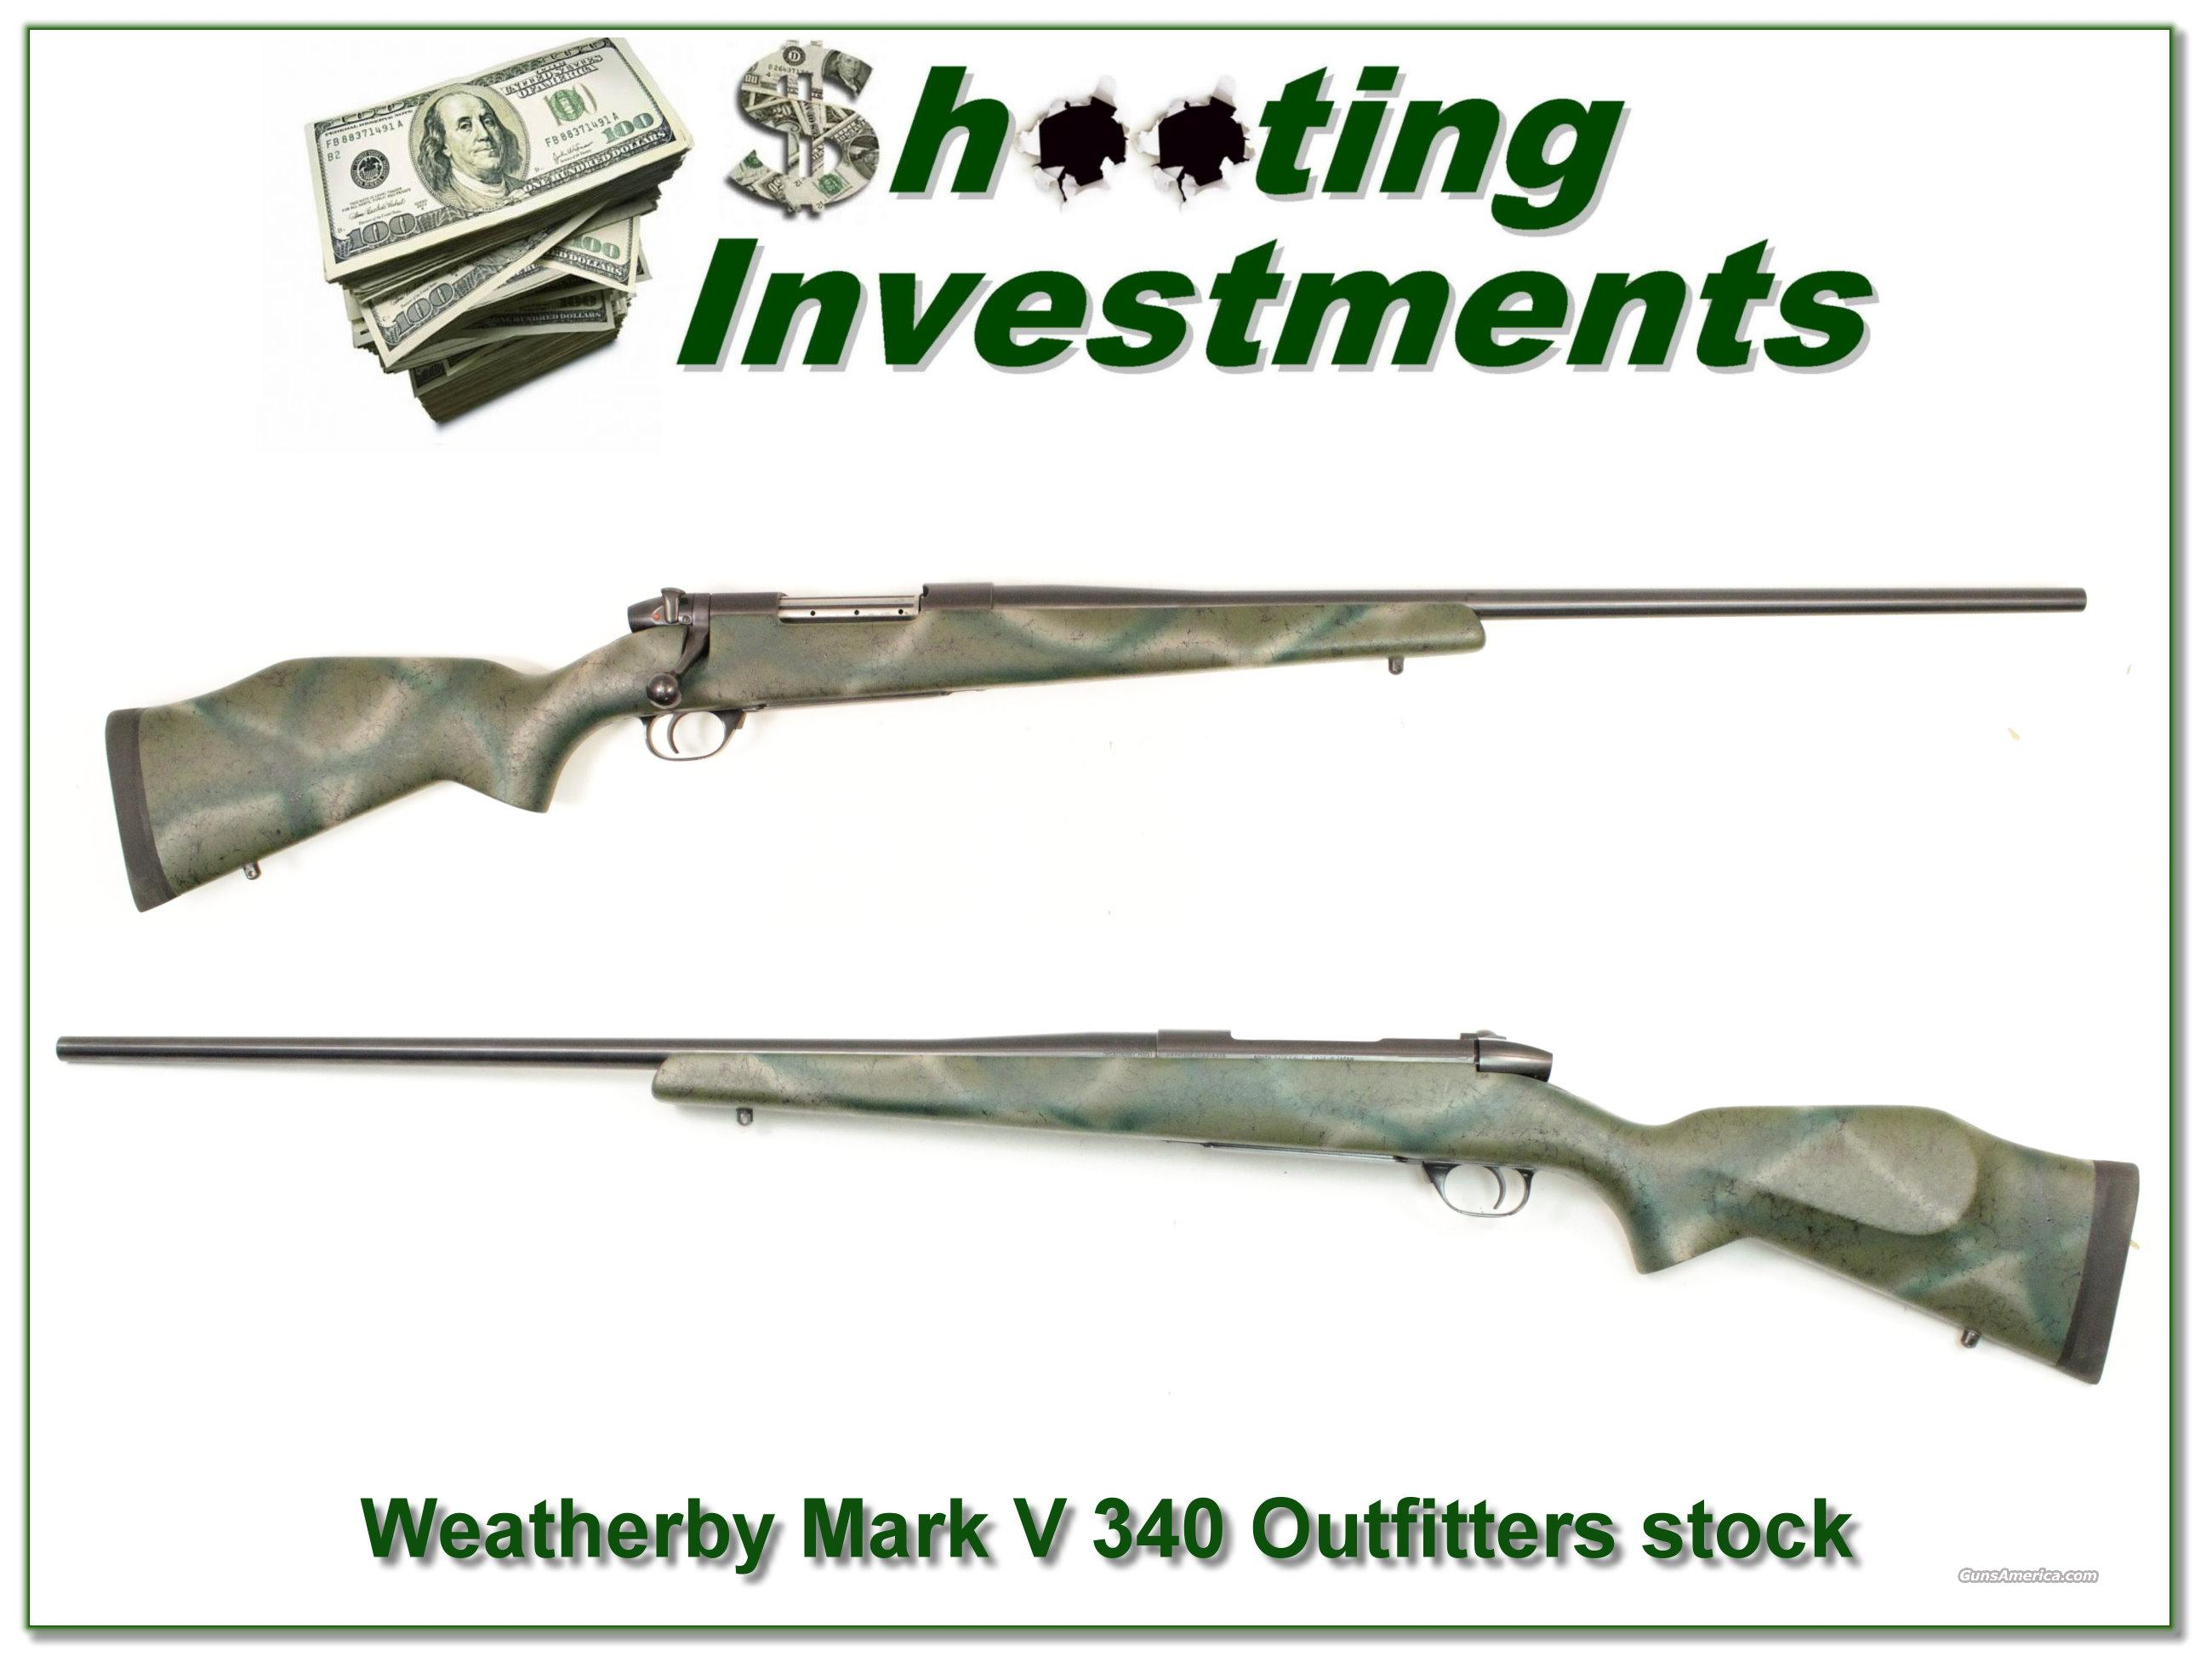 Weatherby Mark V 340 Teflon coated with Outfitters stock  Guns > Rifles > Weatherby Rifles > Sporting